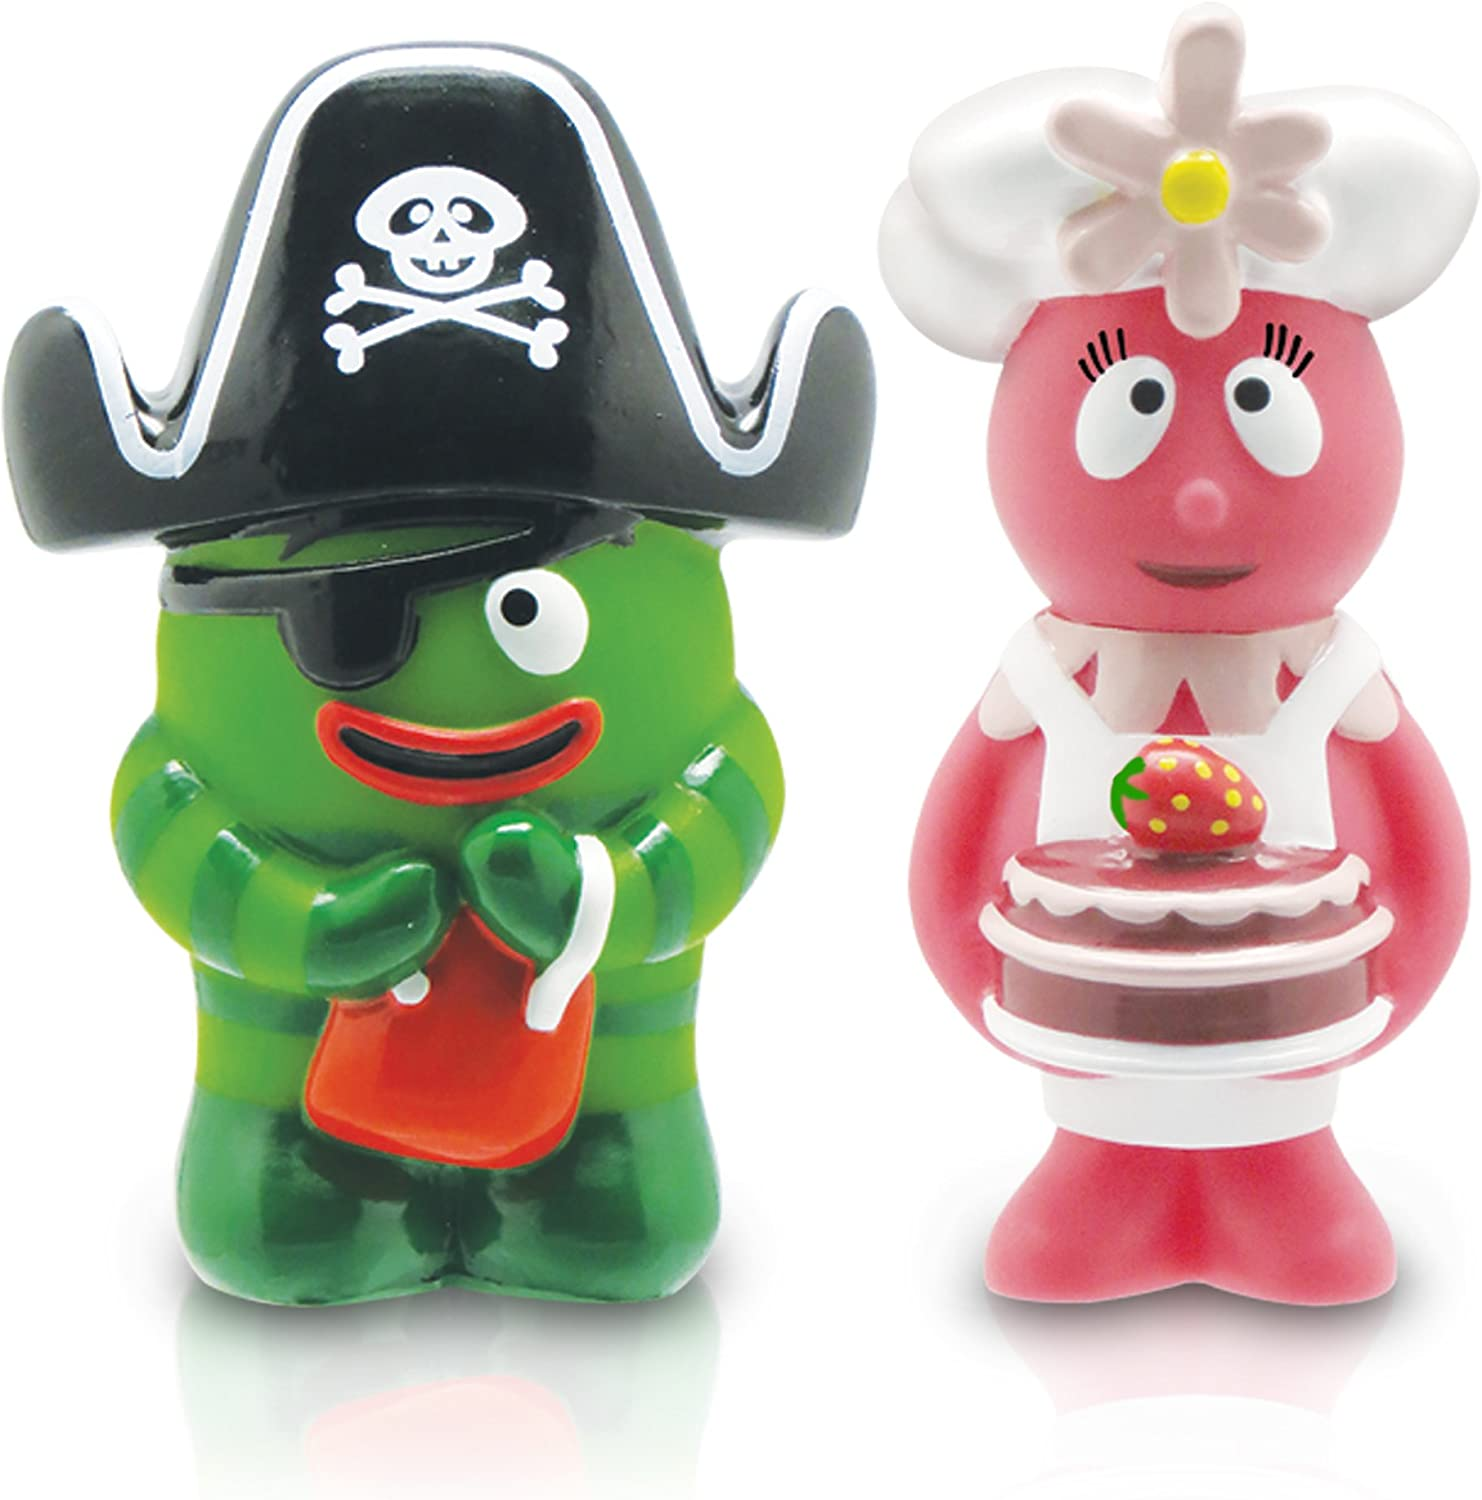 Yo Gabba Gabba 2 Collectible Figures 2-Pack Brobee and Foofa